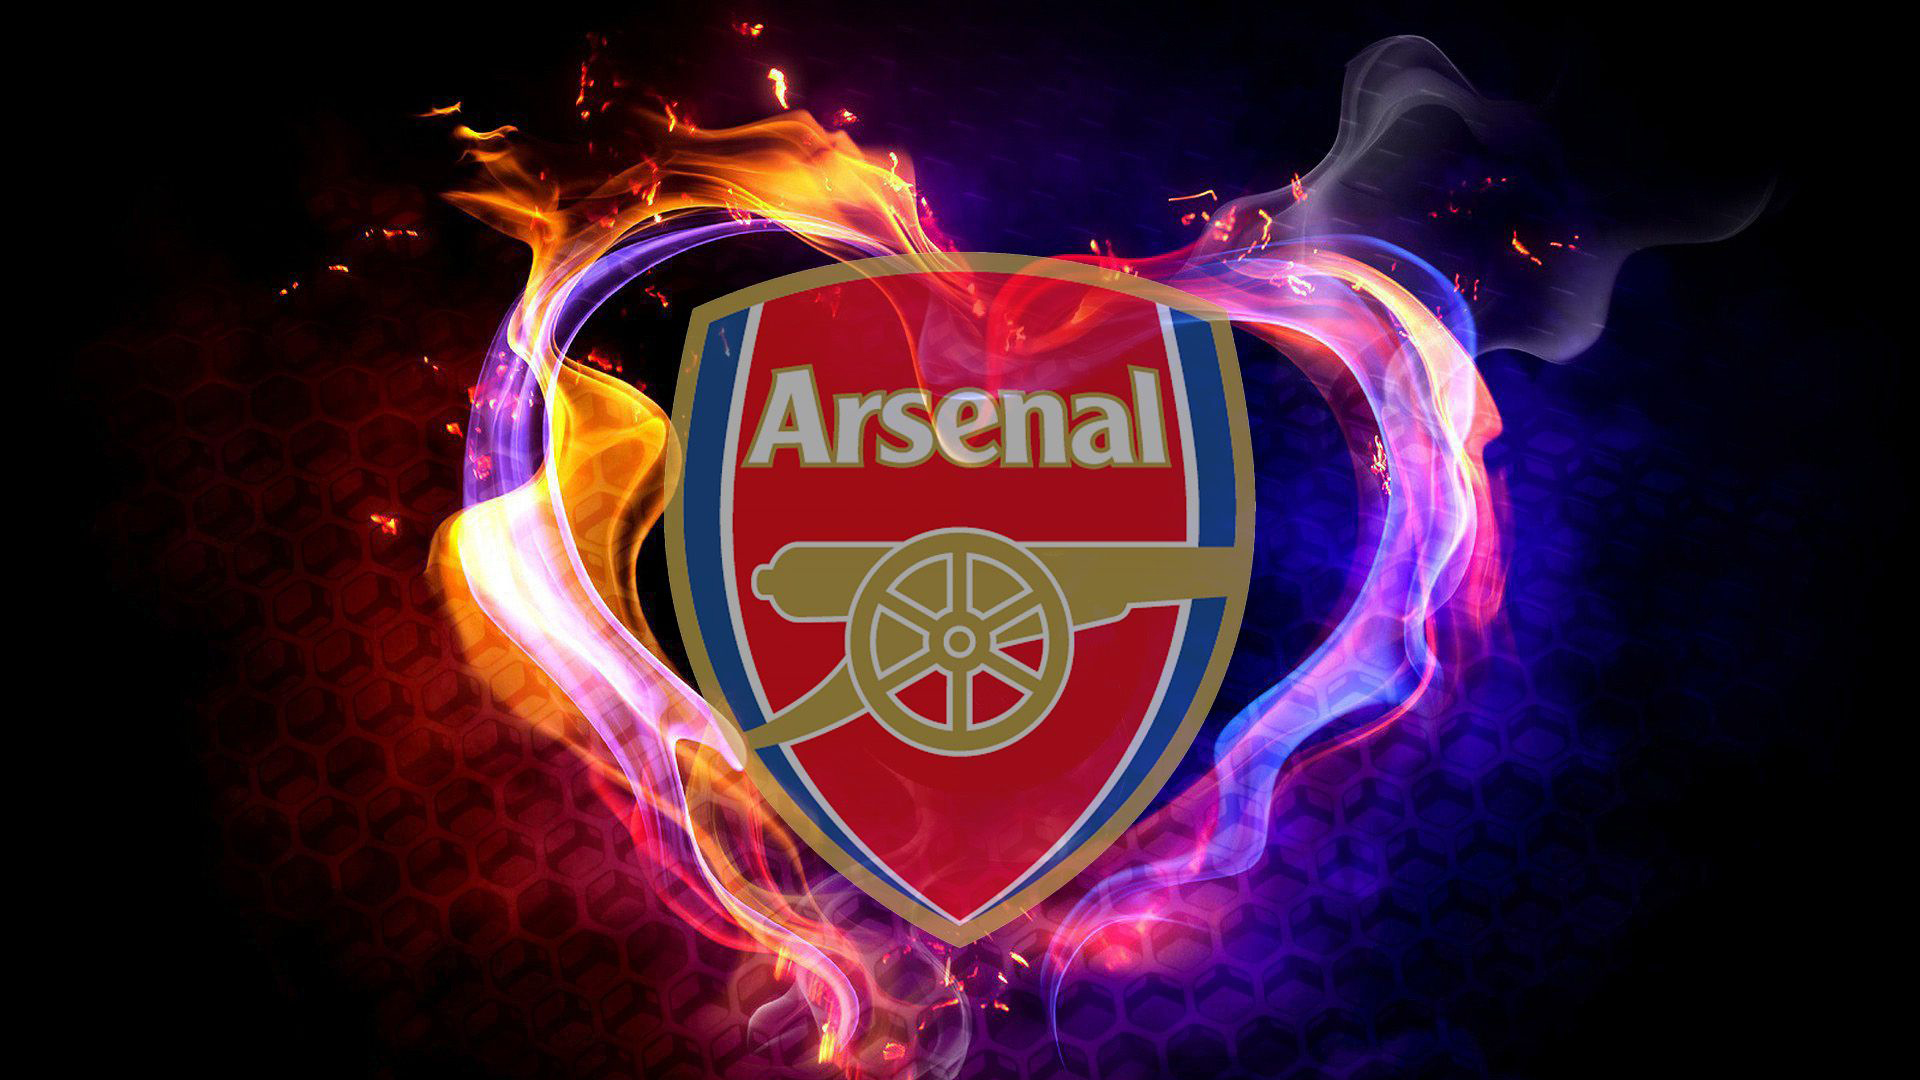 Download Arsenal Logo In Colorful Fire Background Hd Arsenal